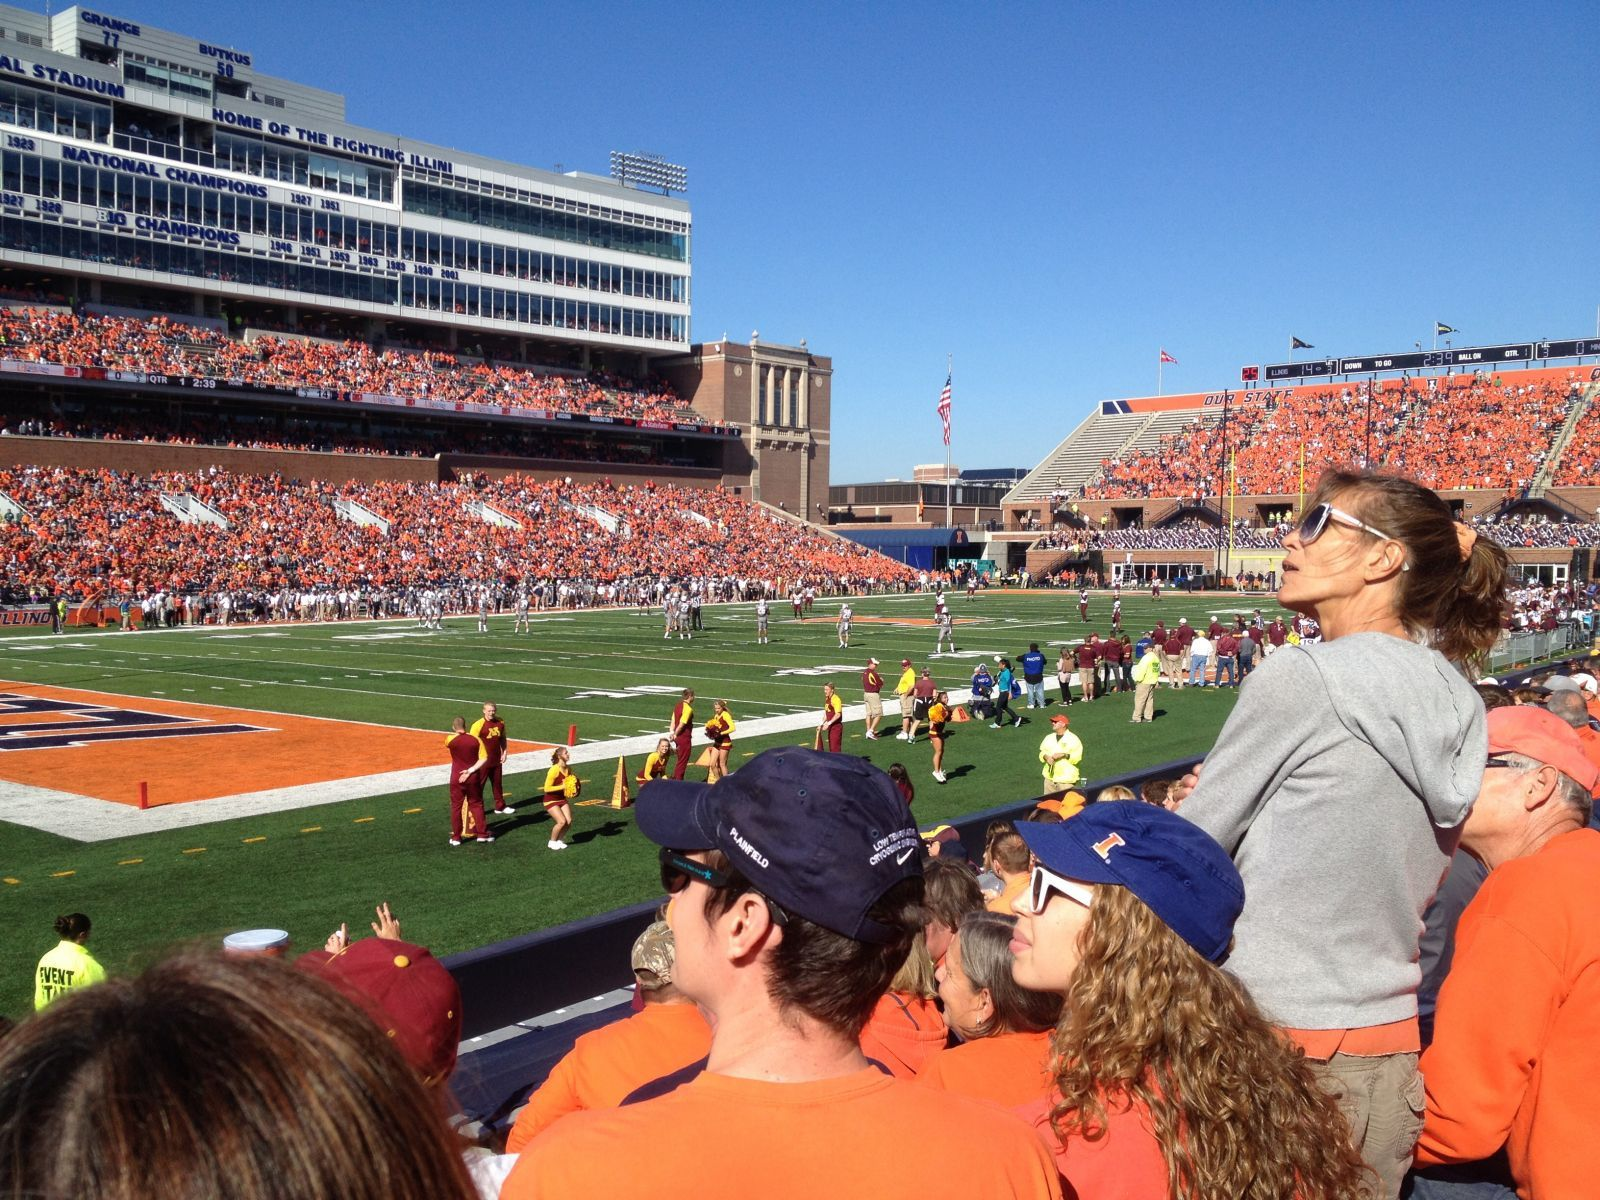 Section 110 seat view